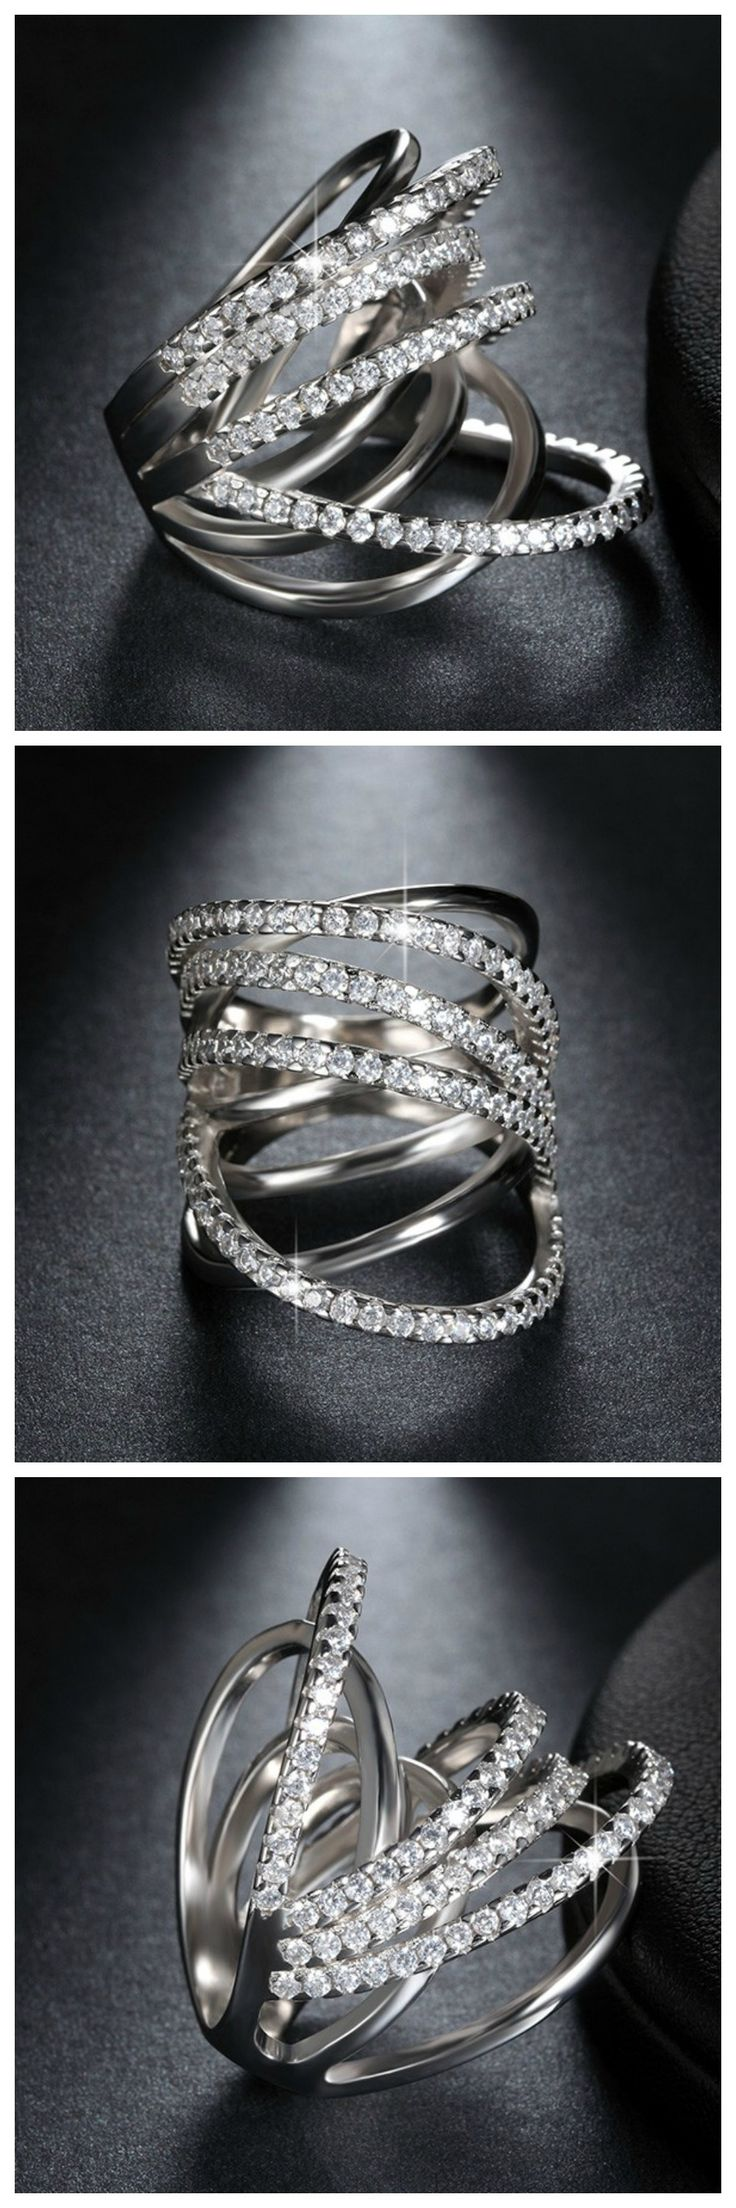 Ziphlets pave ribbon ring. Get 10% off with the code ZIPHLETS10